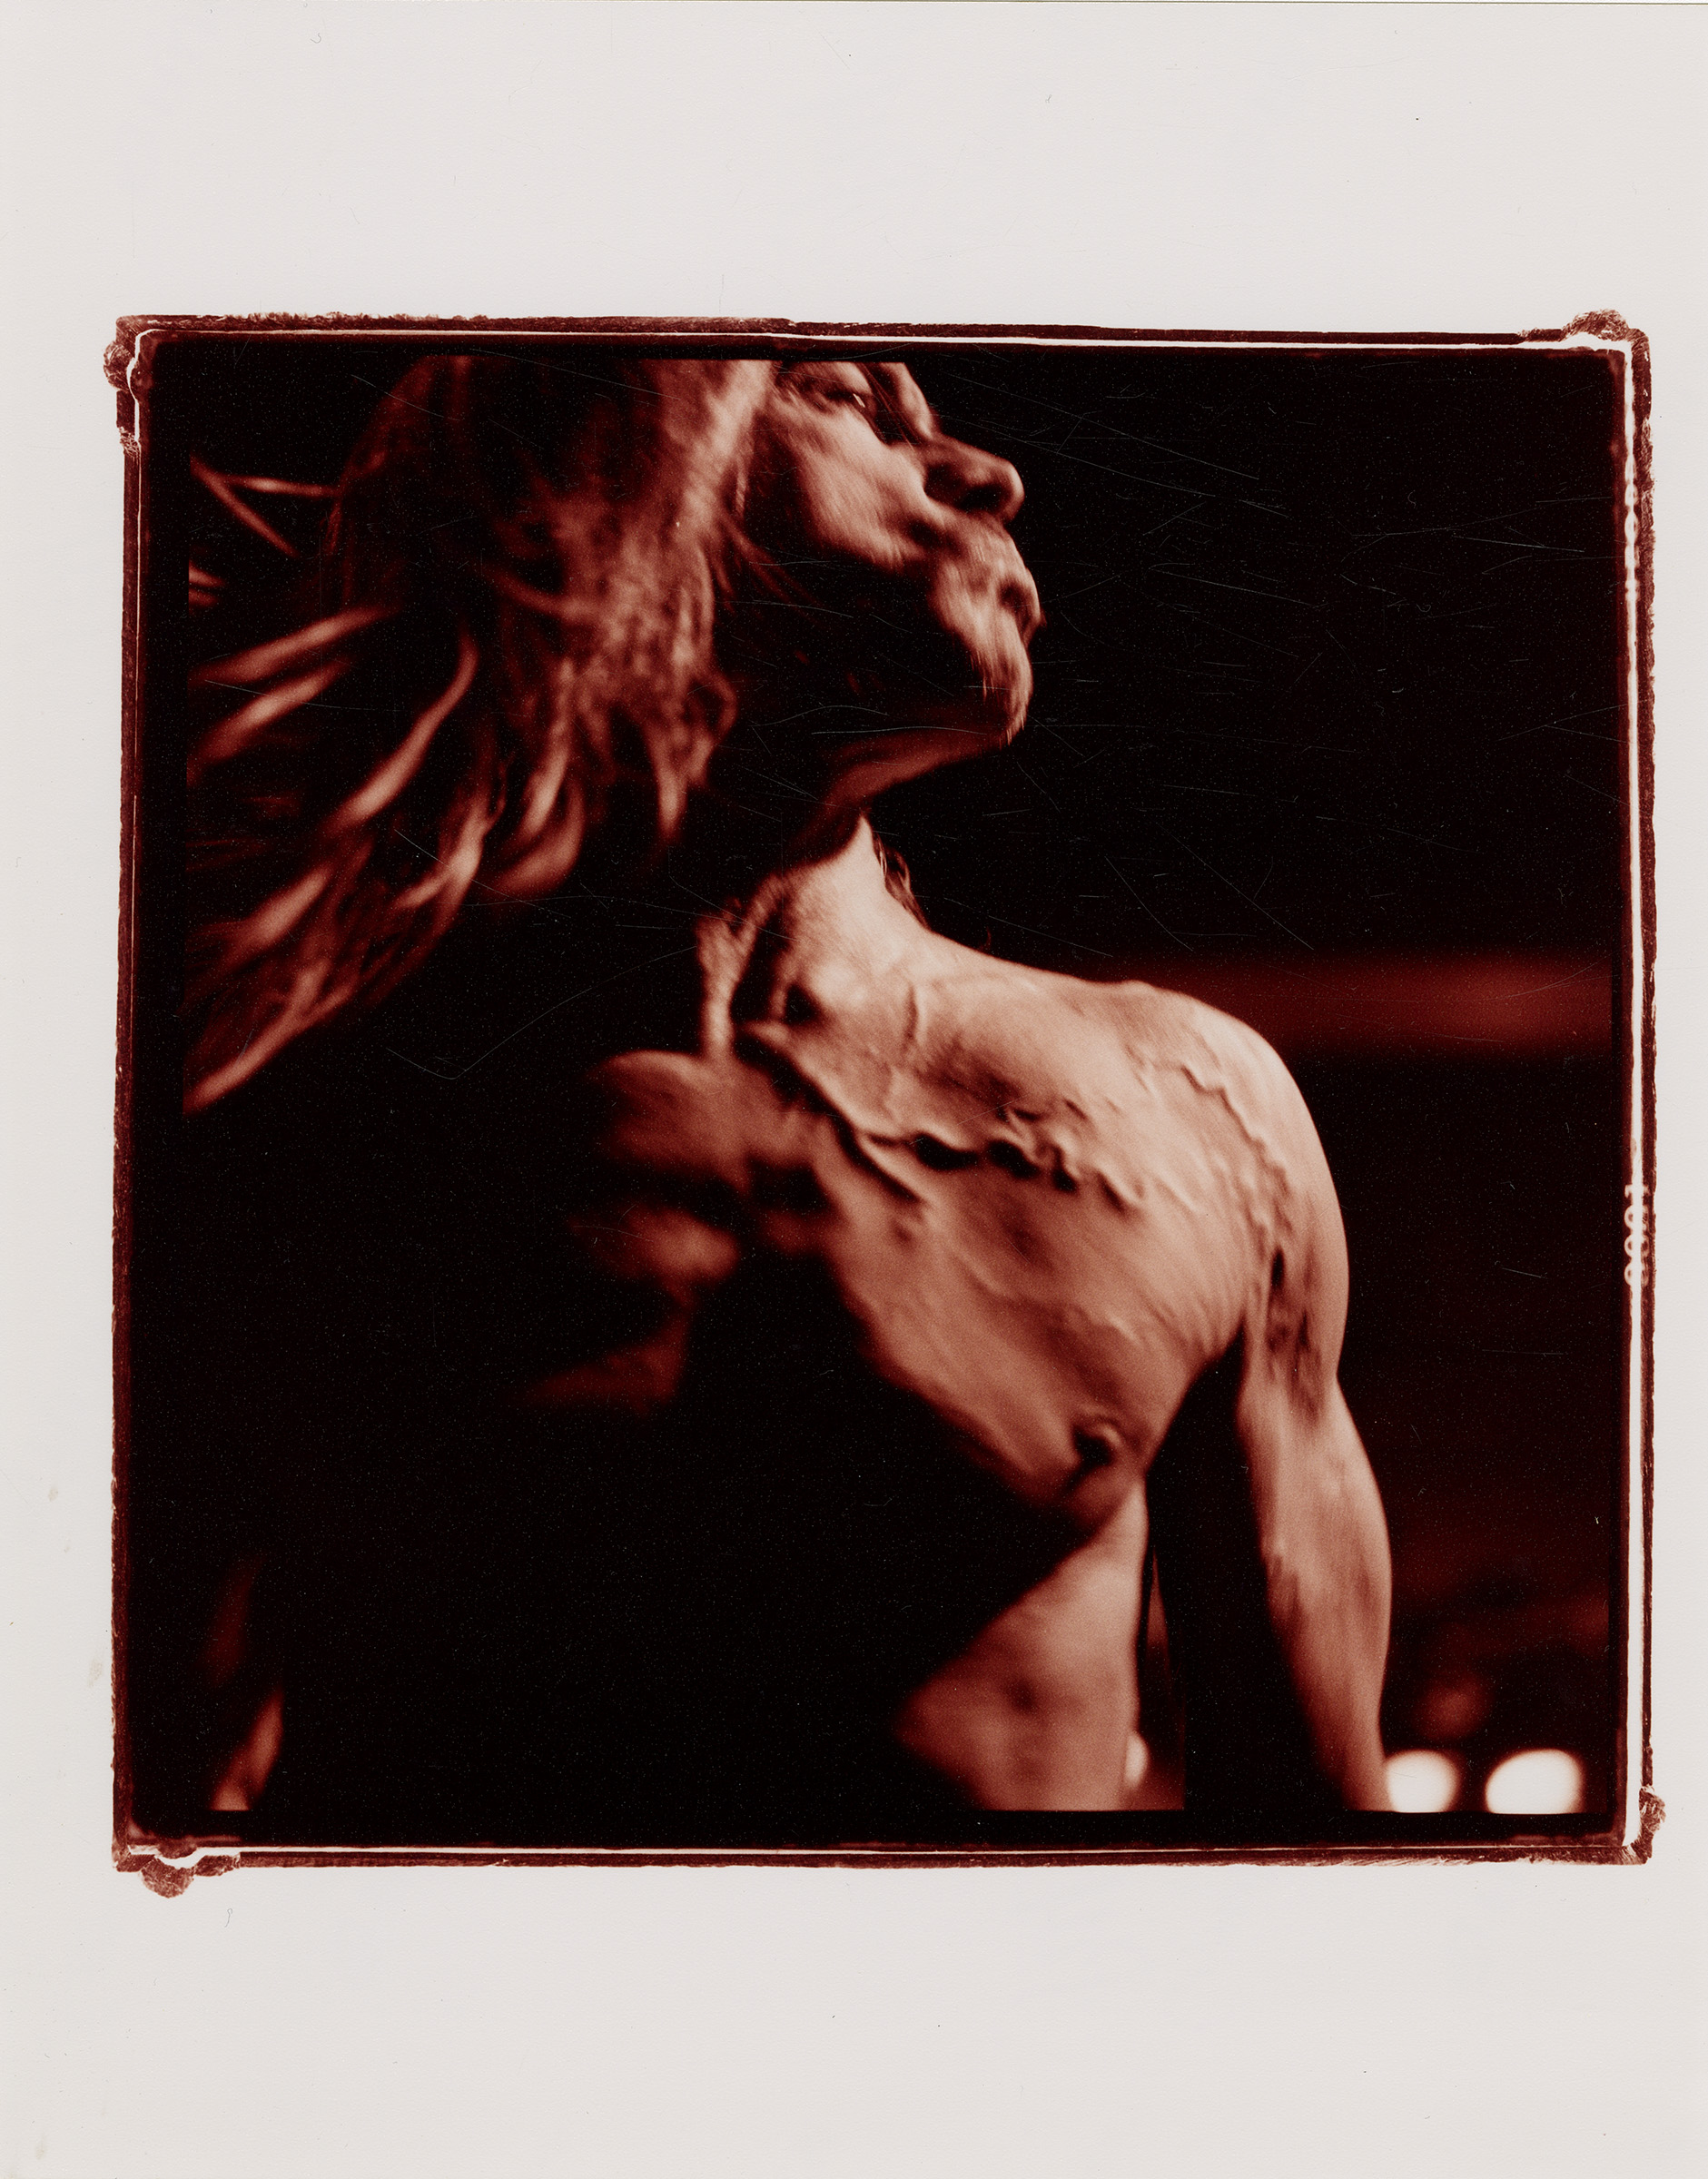 Sam Holden, [Iggy Pop], 2001, chromogenic color print, gelatin silver negatives, cross processed. Collection 255, © Sam Holden Archive, UMBC; Mina and Todd Holden, and Donna Sherman, used with permission